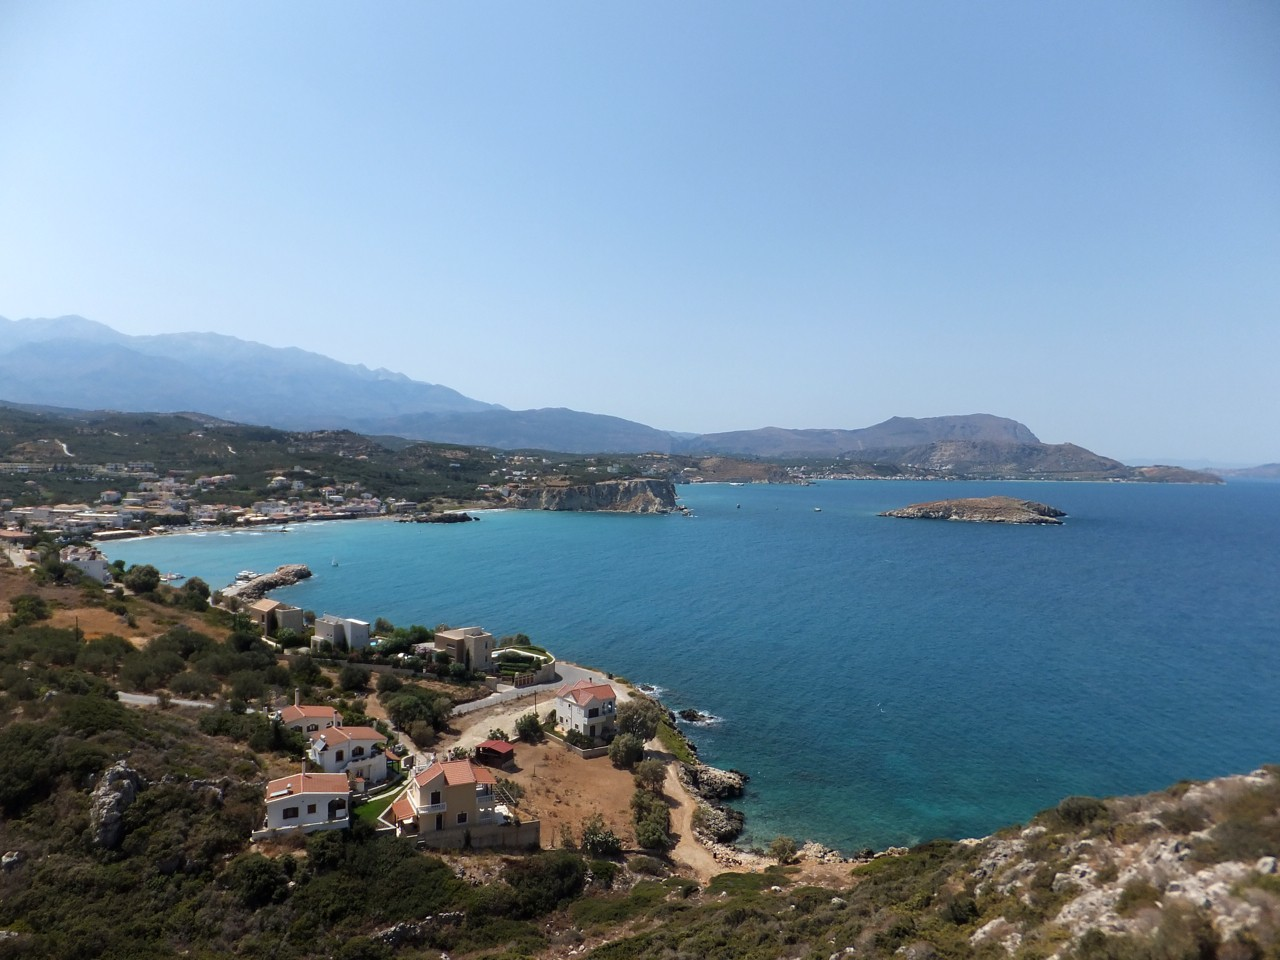 Kokkino Chorio, or Red Village, sits on the Drapano Cape overlooking the magnificent Souda Bay.